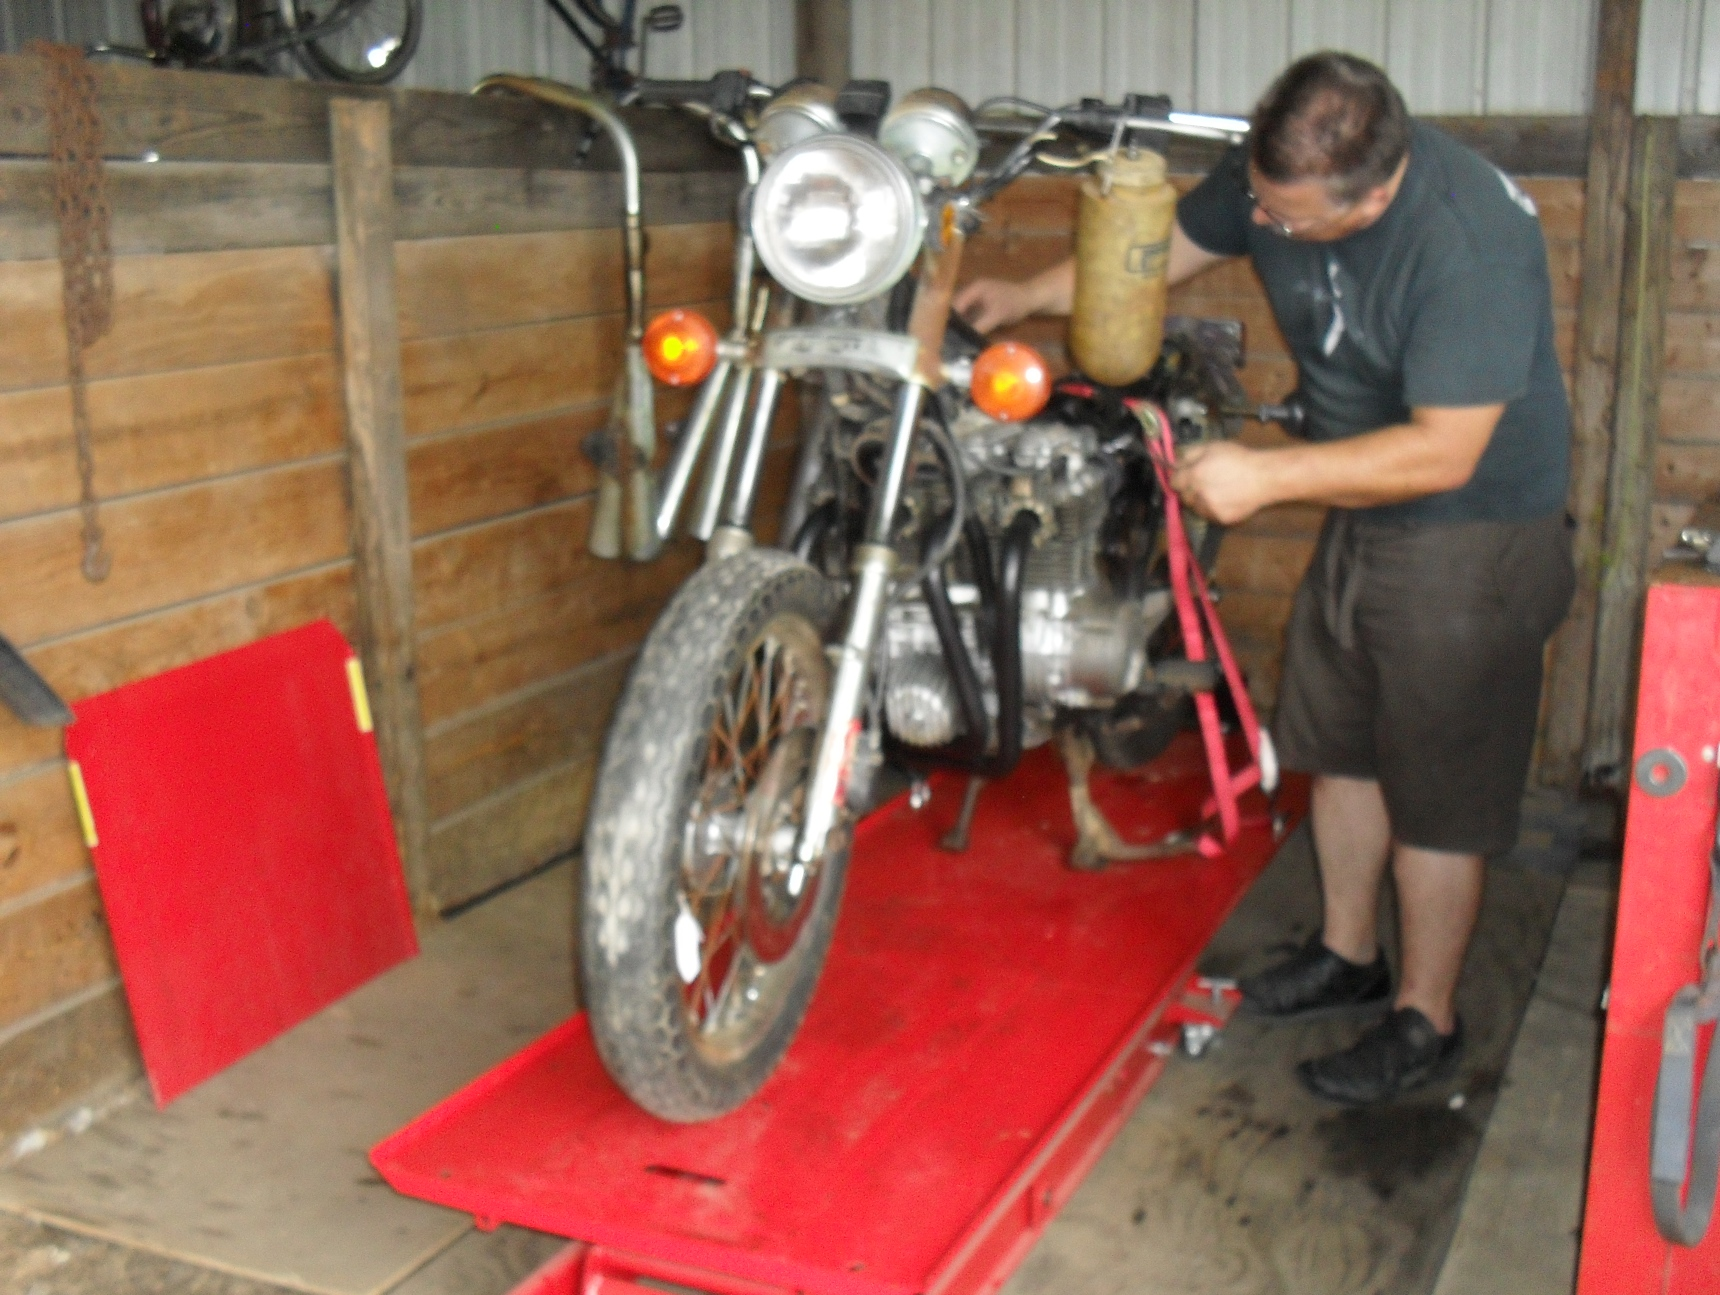 Vintage Piston Valve Keihin Carburetor Overhaul Motopsycos Asylum Cb650c Wiring Diagram Motopsyco Working On His Cb650